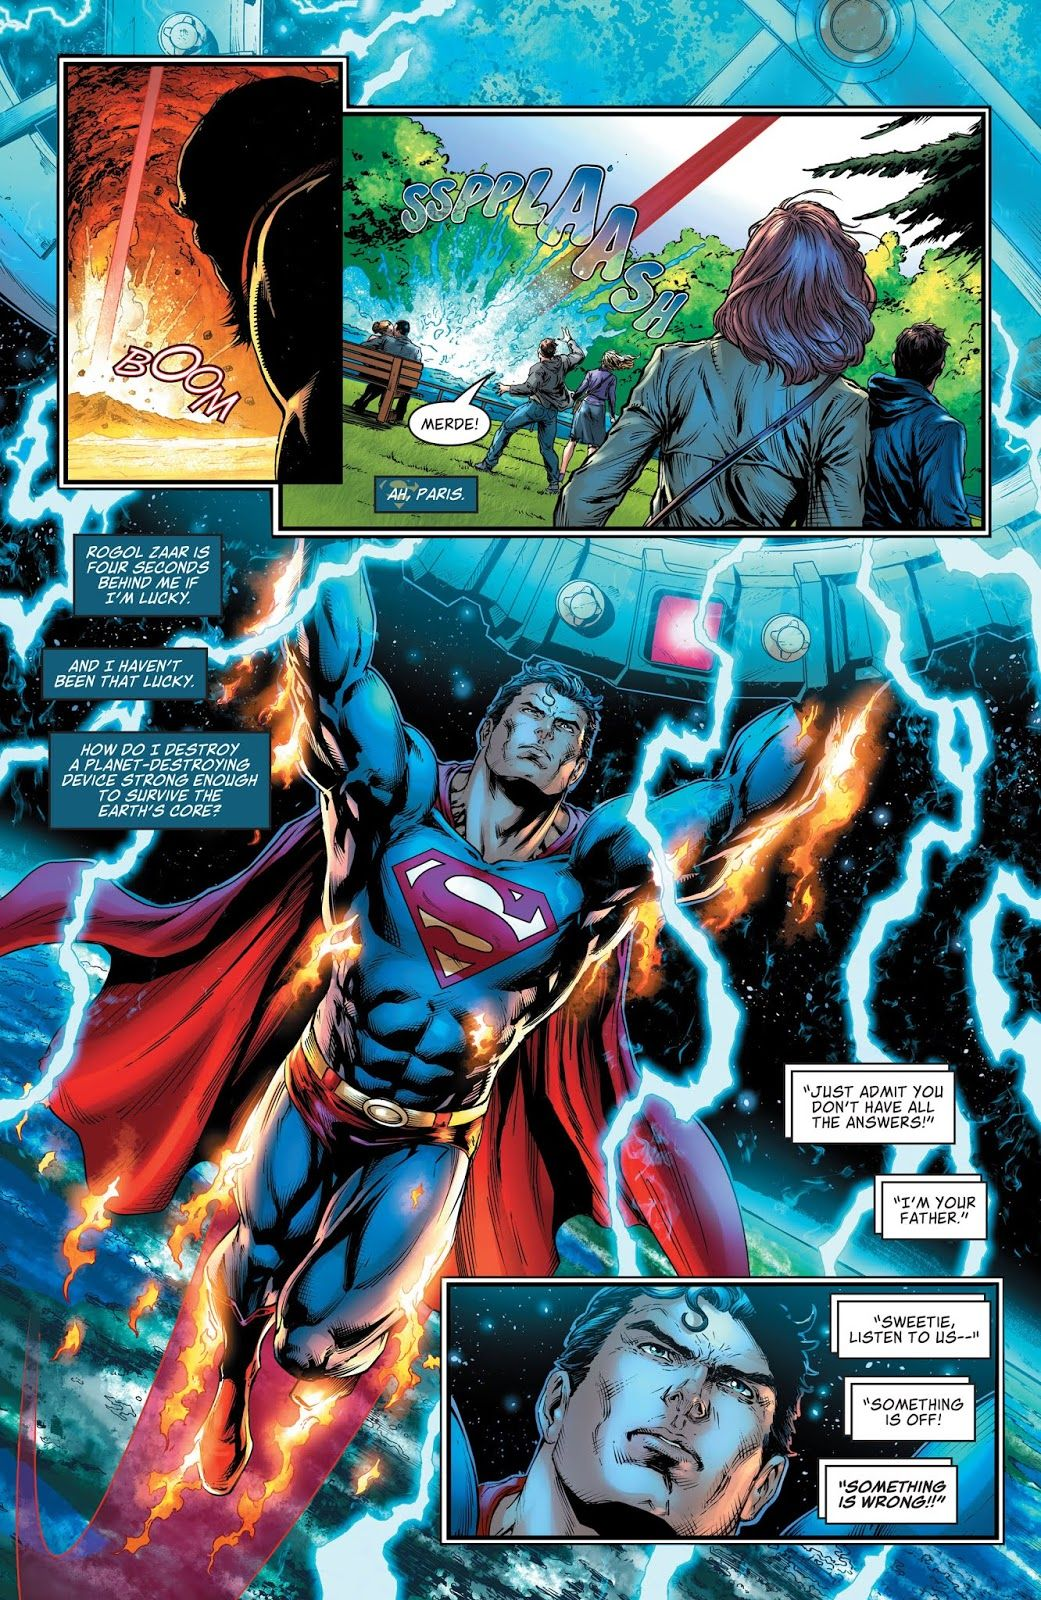 The Man Of Steel 2018 Issue 6 Read The Man Of Steel 2018 Issue 6 Comic Online In High Quality Superman Art Man Of Steel Comic Book Pages